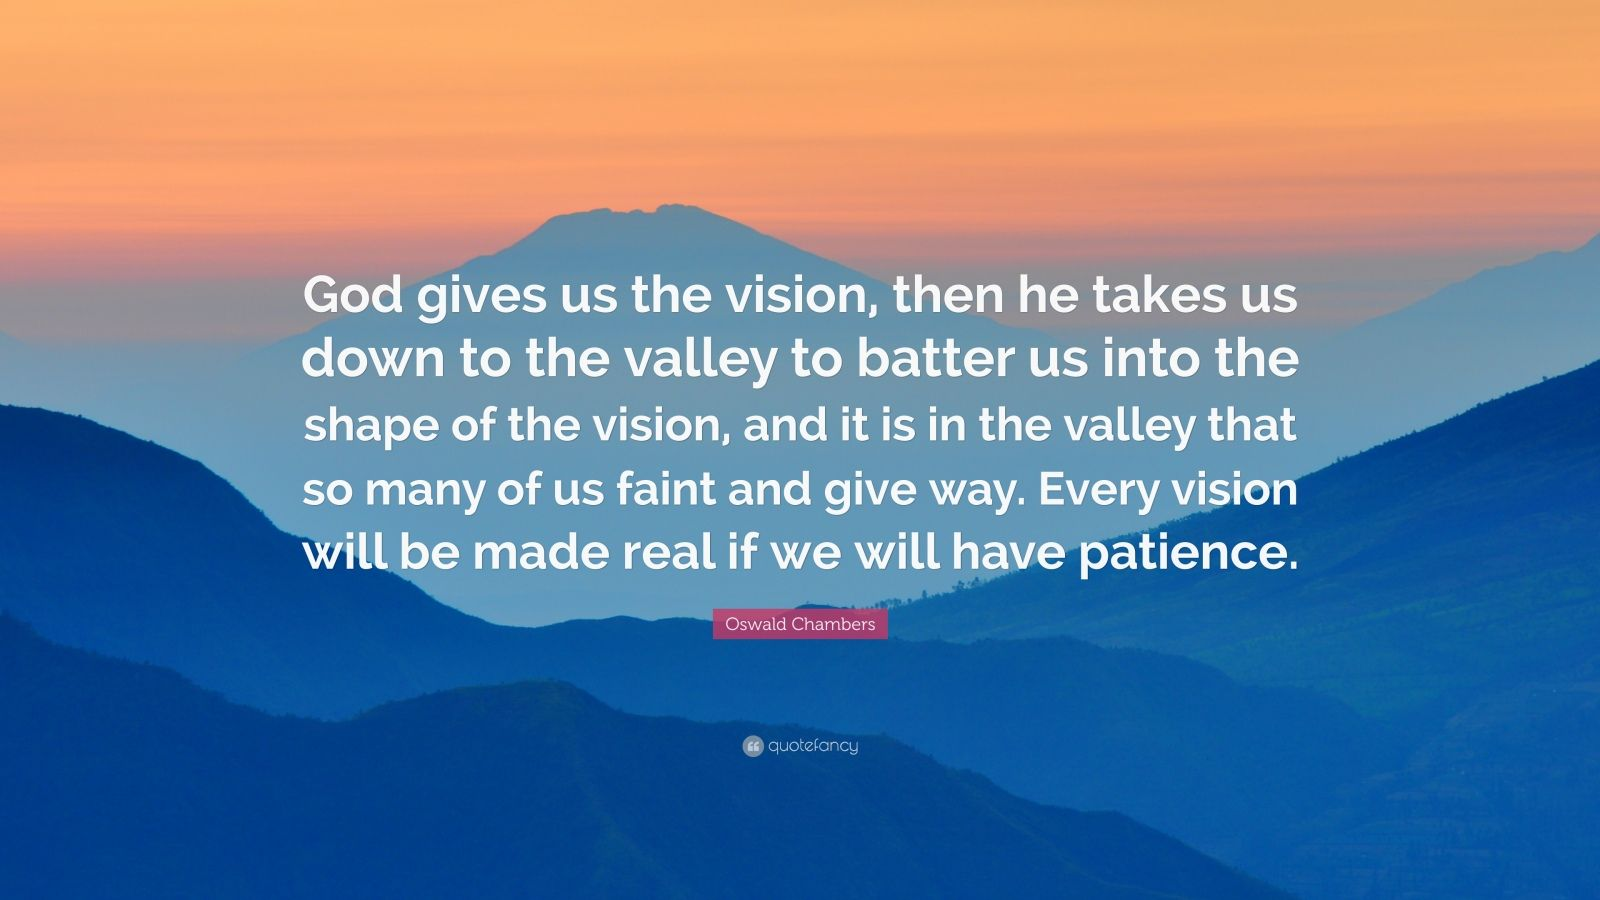 "Oswald Chambers Quote: ""God gives us the vision, then he takes us down to the valley to batter us into the shape of the vision, and it is in the valley that so many of us faint and give way. Every vision will be made real if we will have patience."""